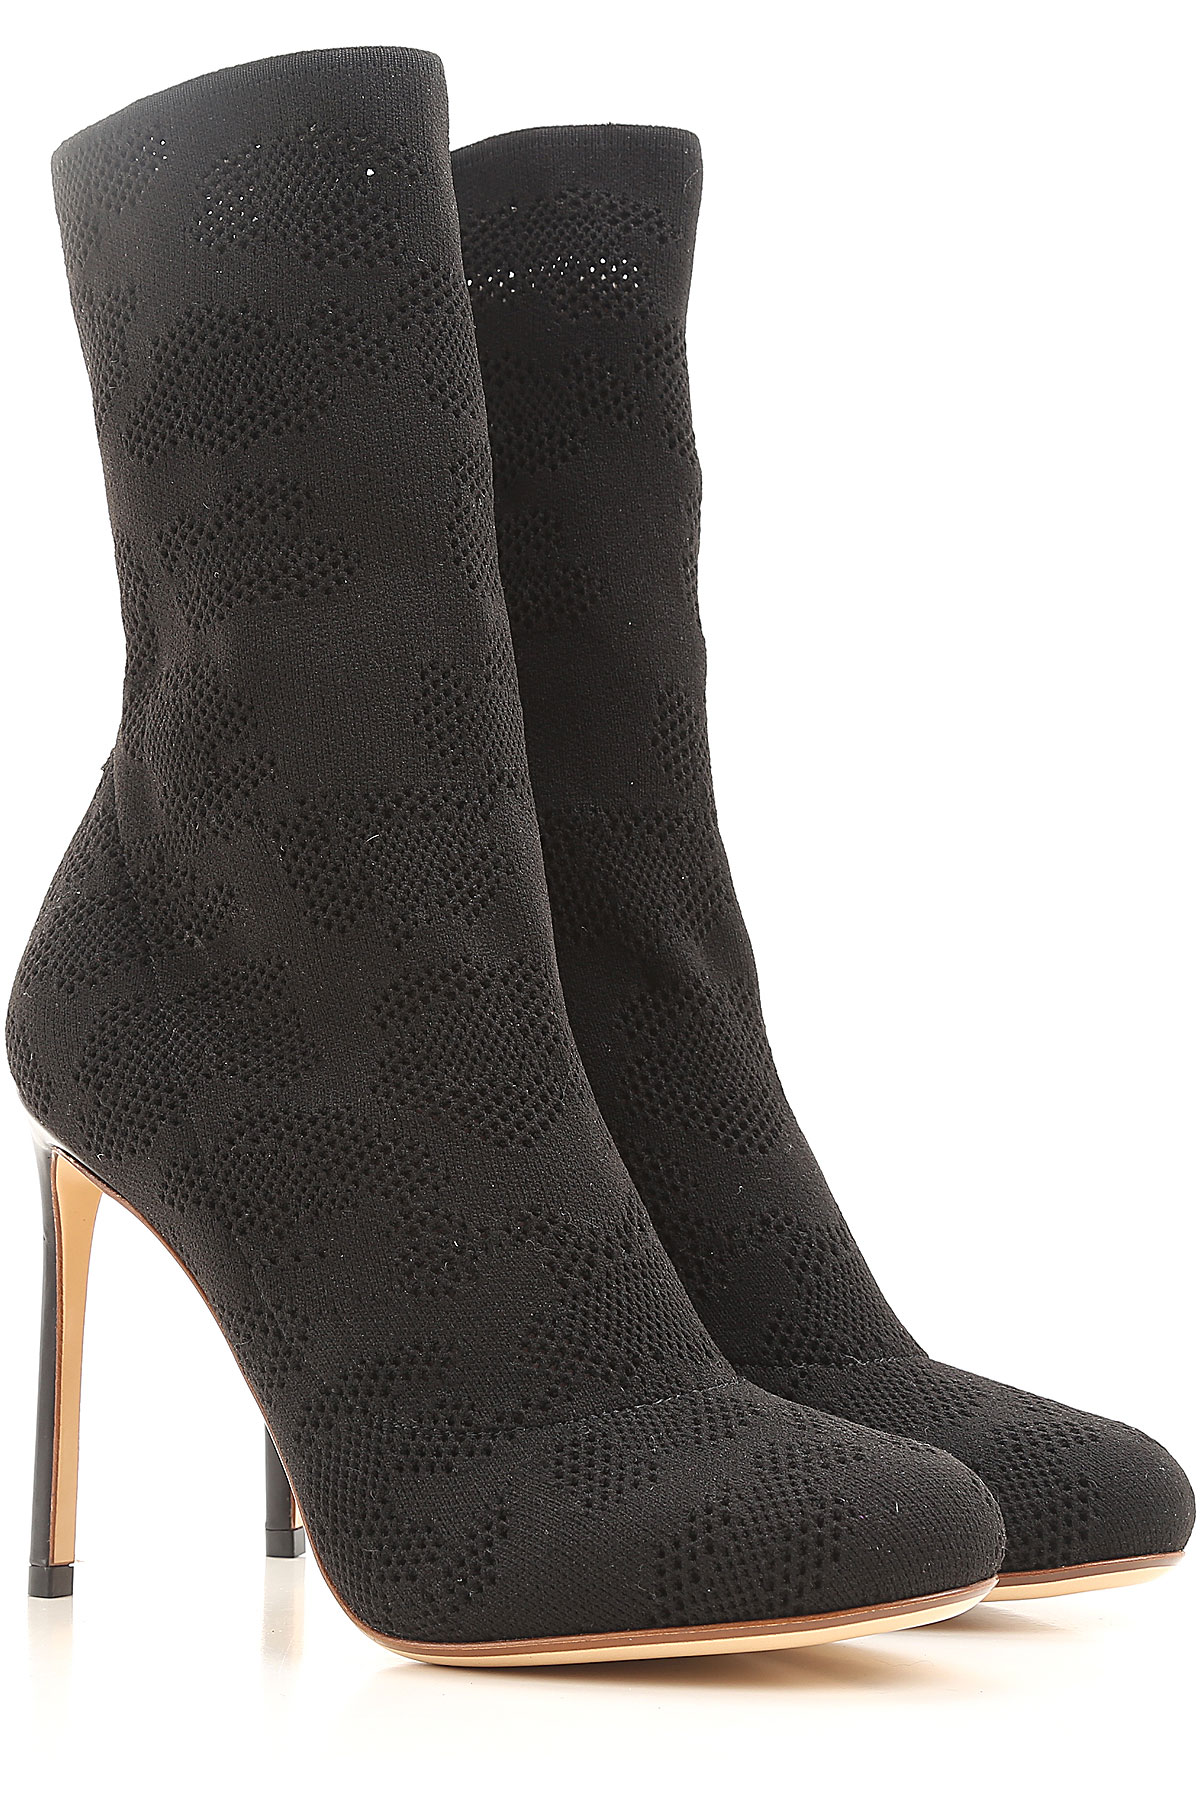 Francesco Russo Boots for Women, Booties On Sale in Outlet, Black, Fabric, 2019, 8.5 9